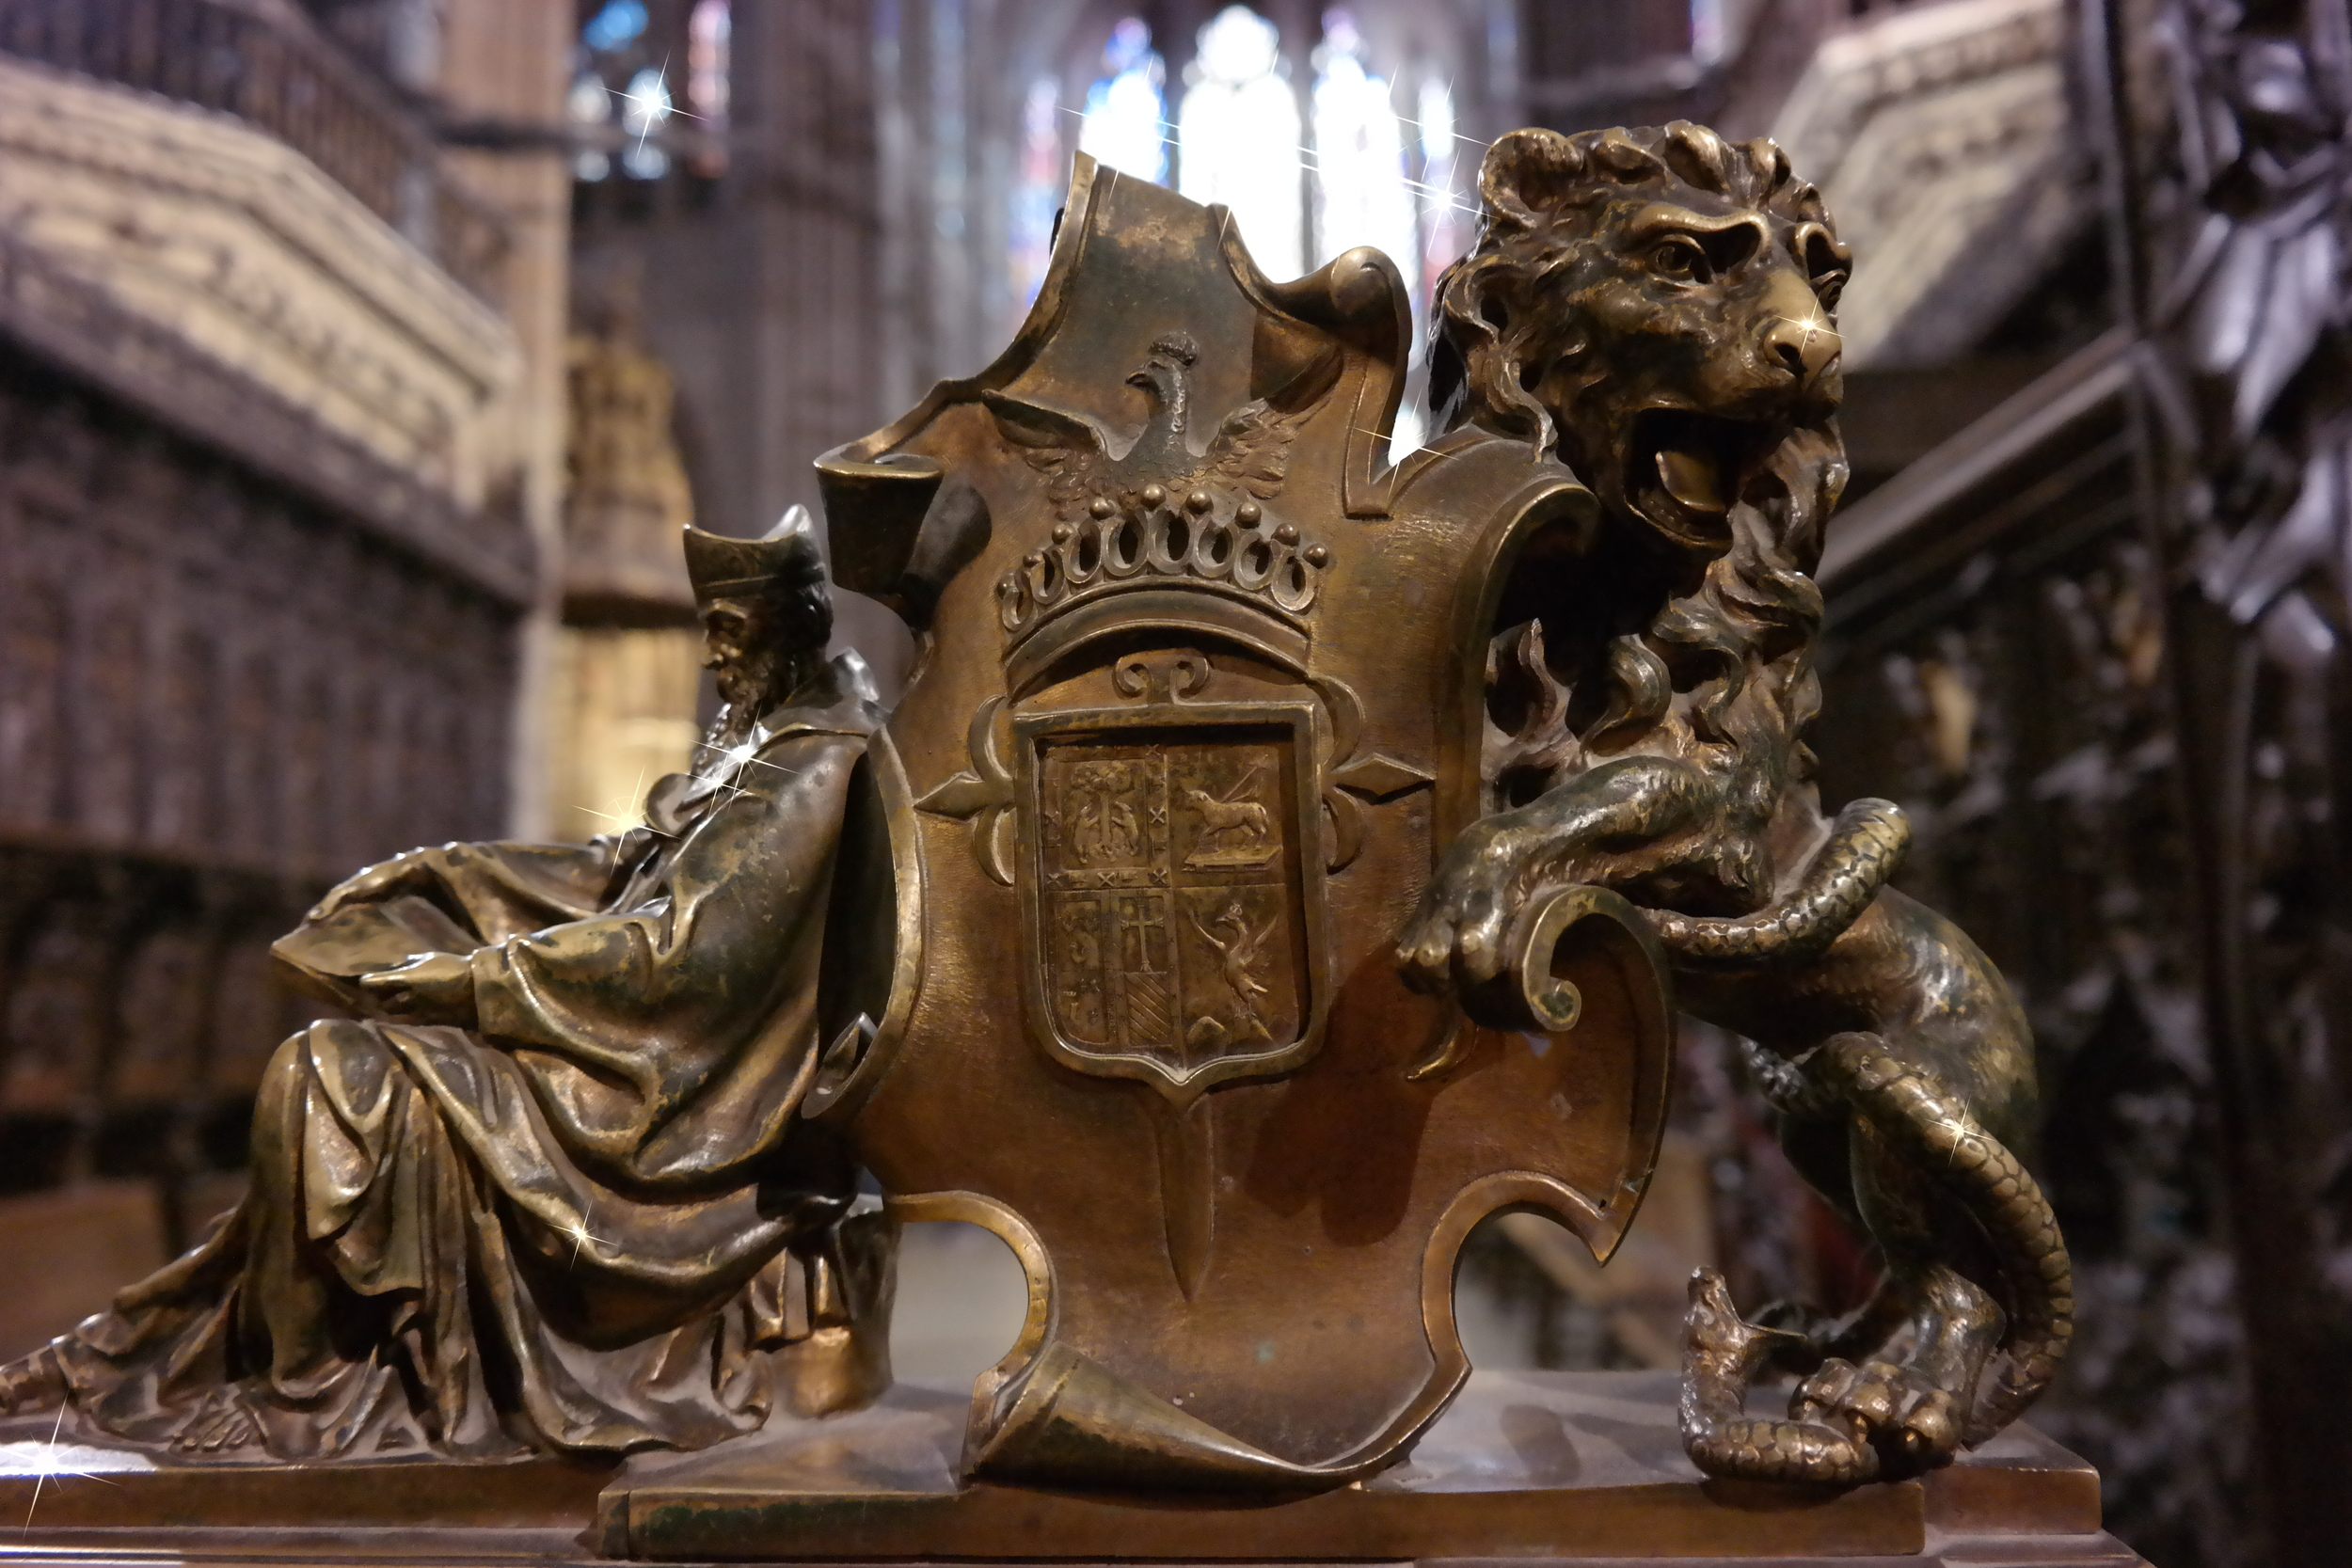 The symbol of León inside the cathedral.